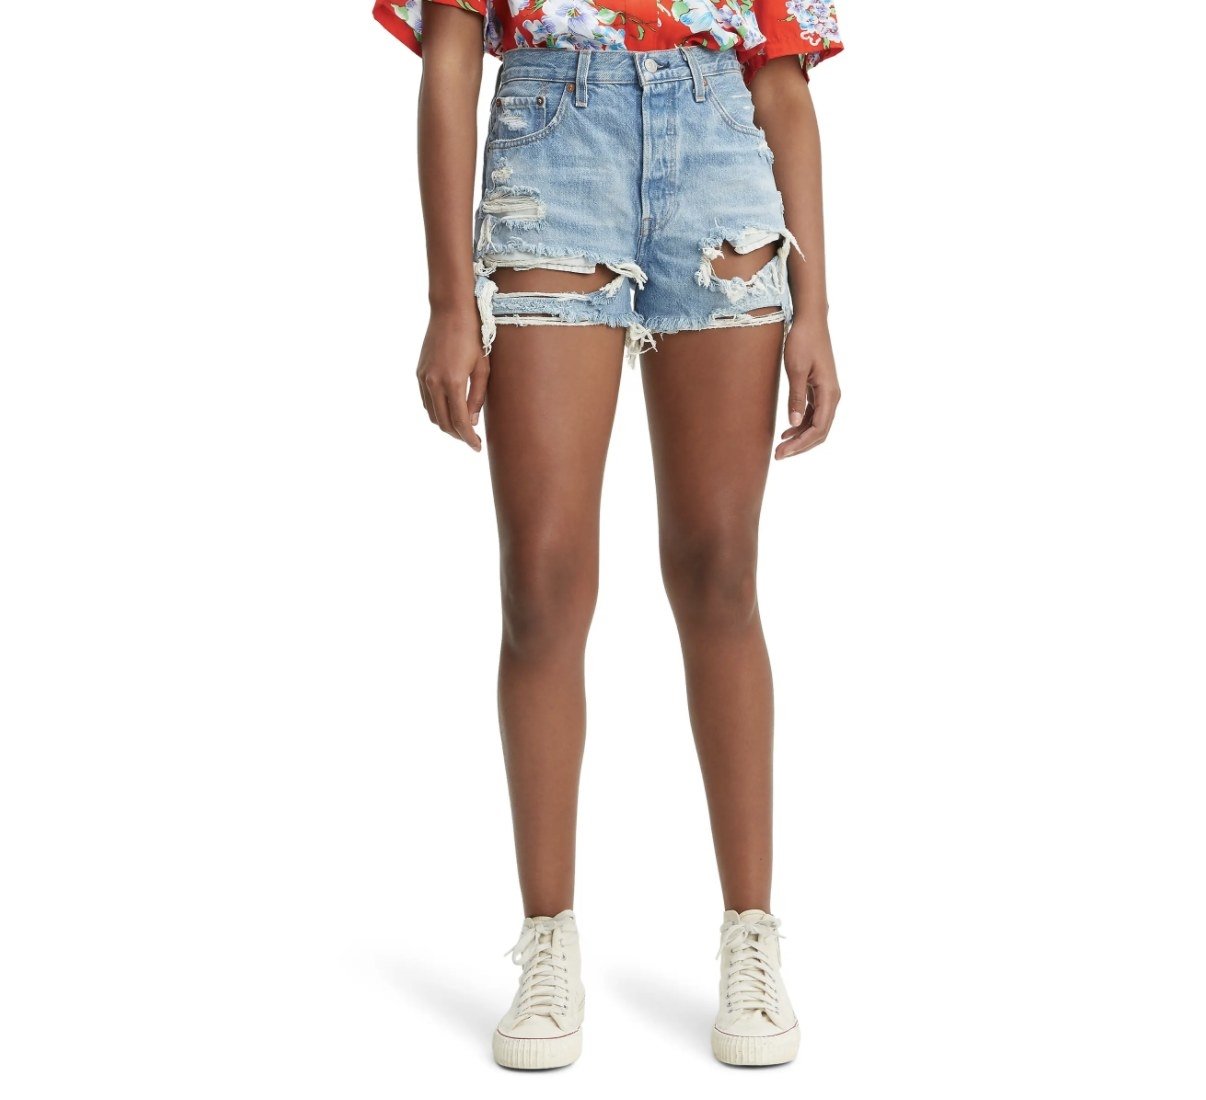 Model is wearing blue high-waisted shorts and tennis shoes